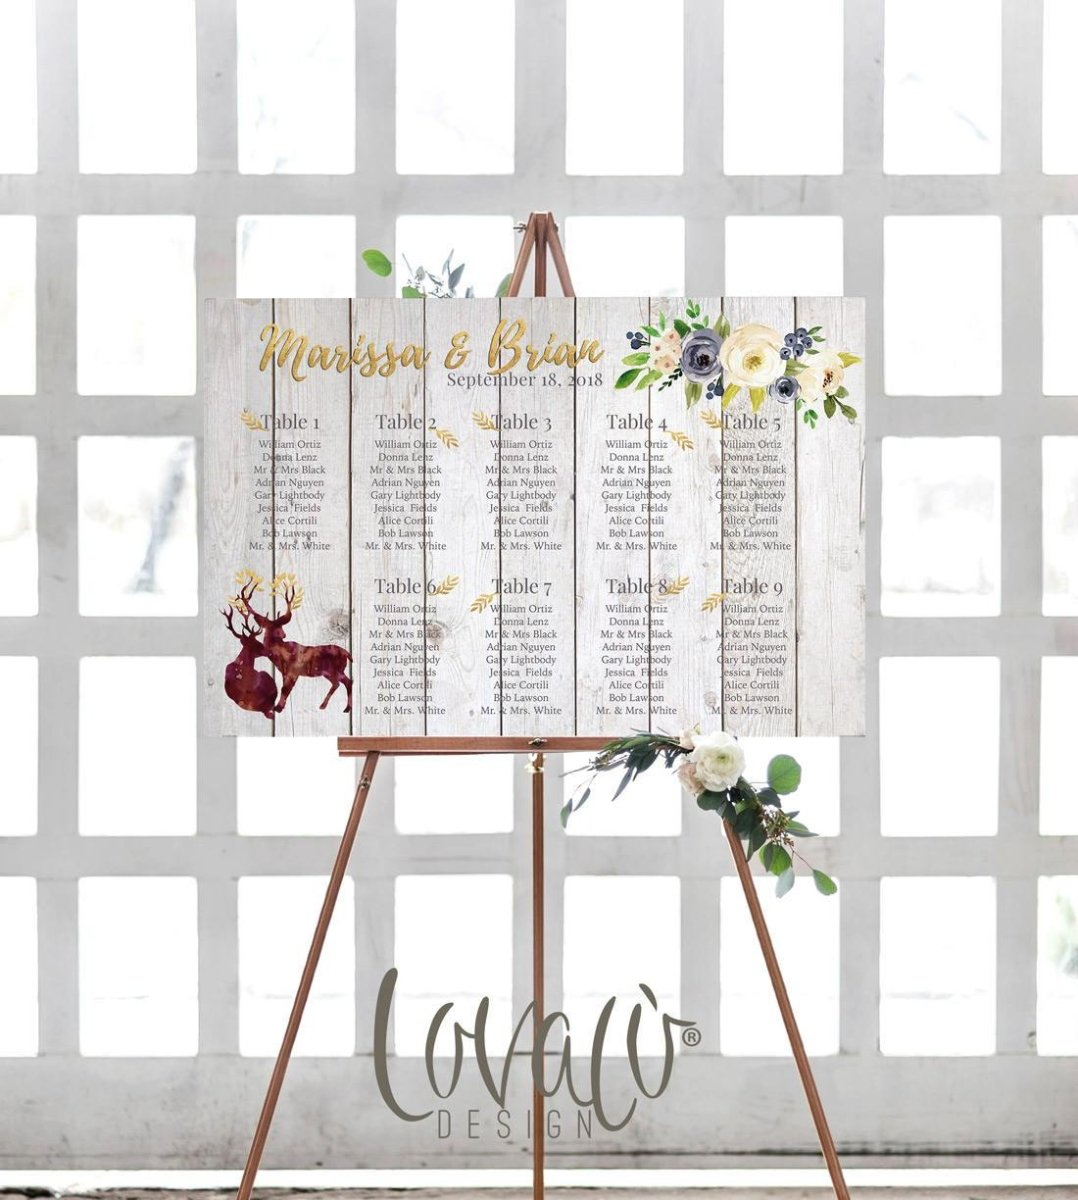 Wedding seating chart printable, Gold guests list watercolor printable, Boho guest list seating chart floral, Rustic Deers Tabeau de Mariage - LovaluDesign